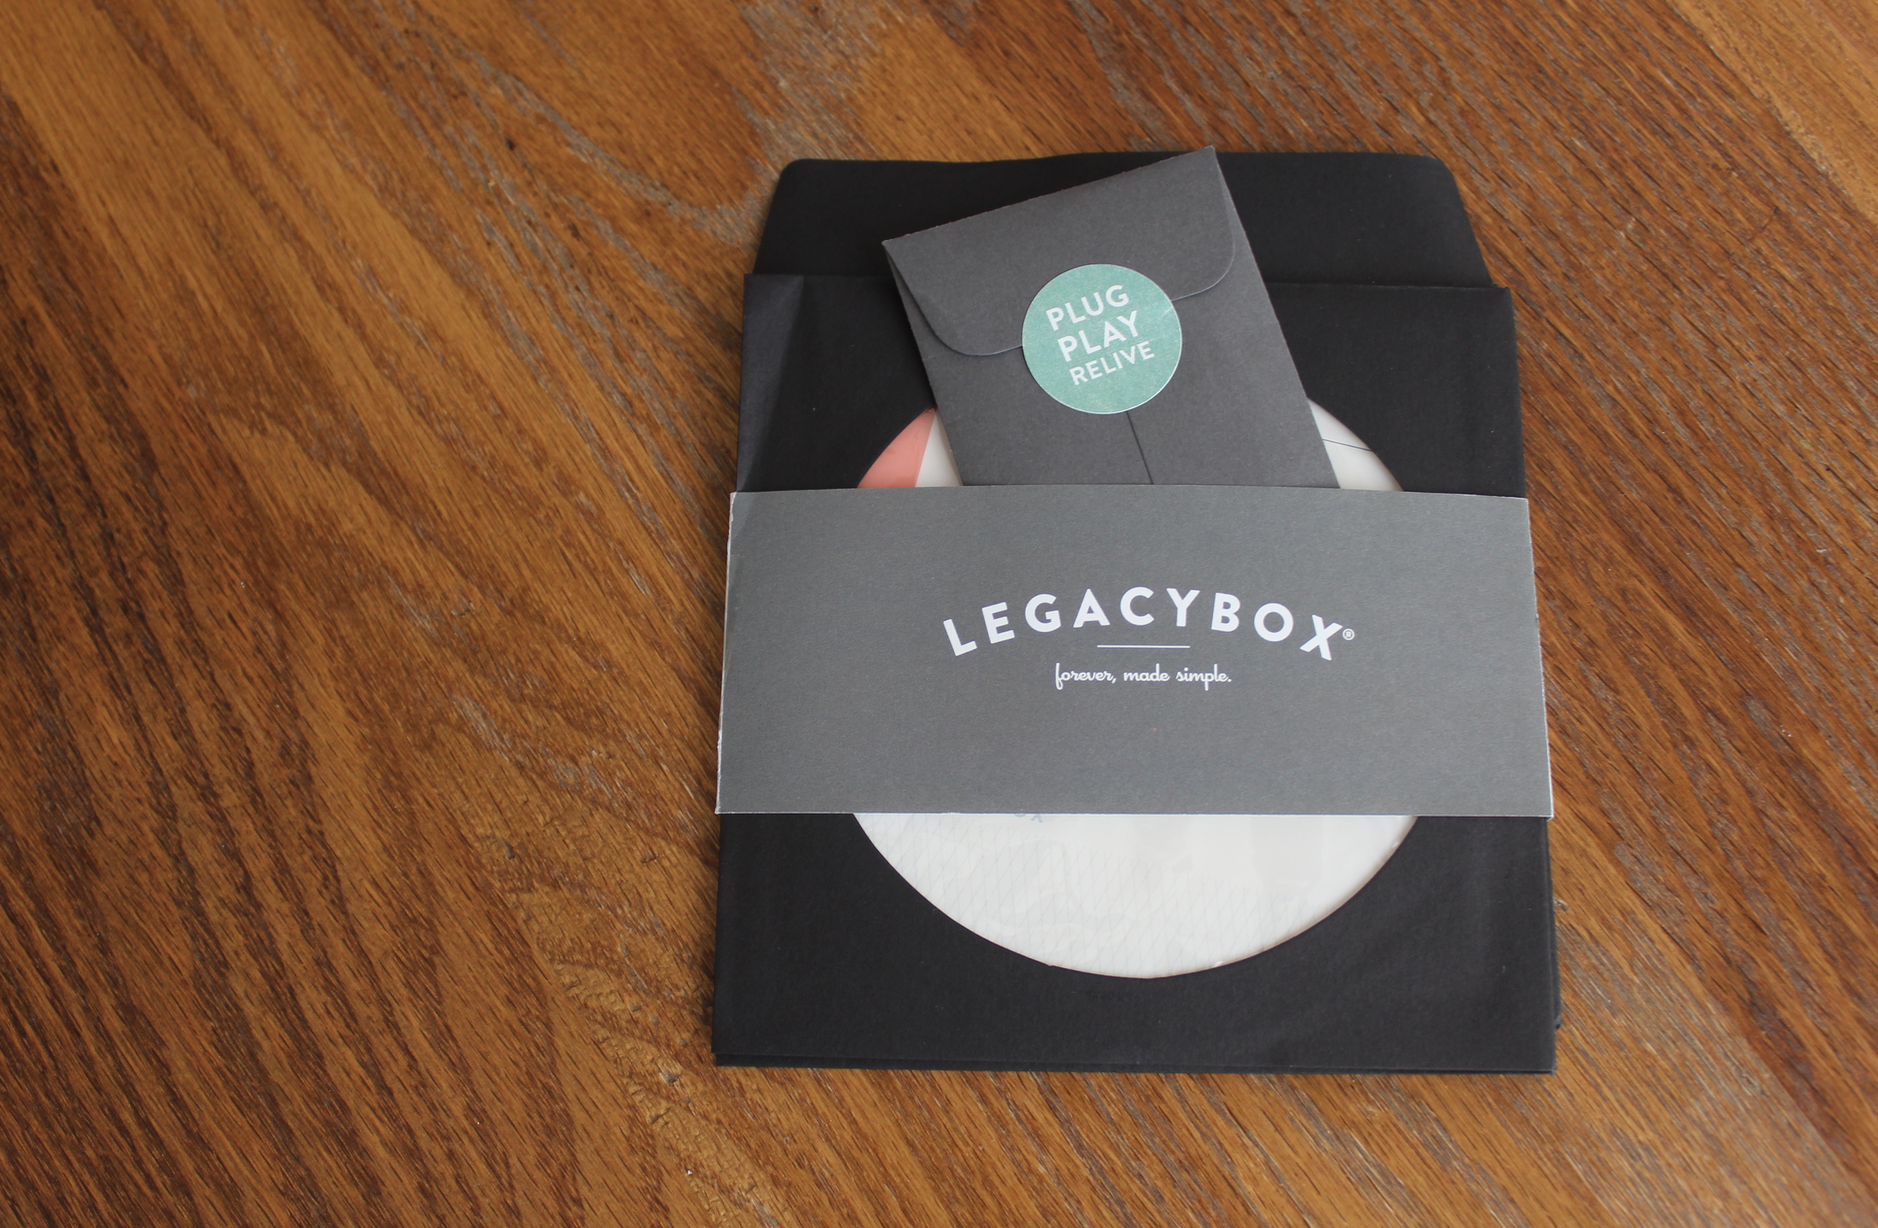 Legacybox products